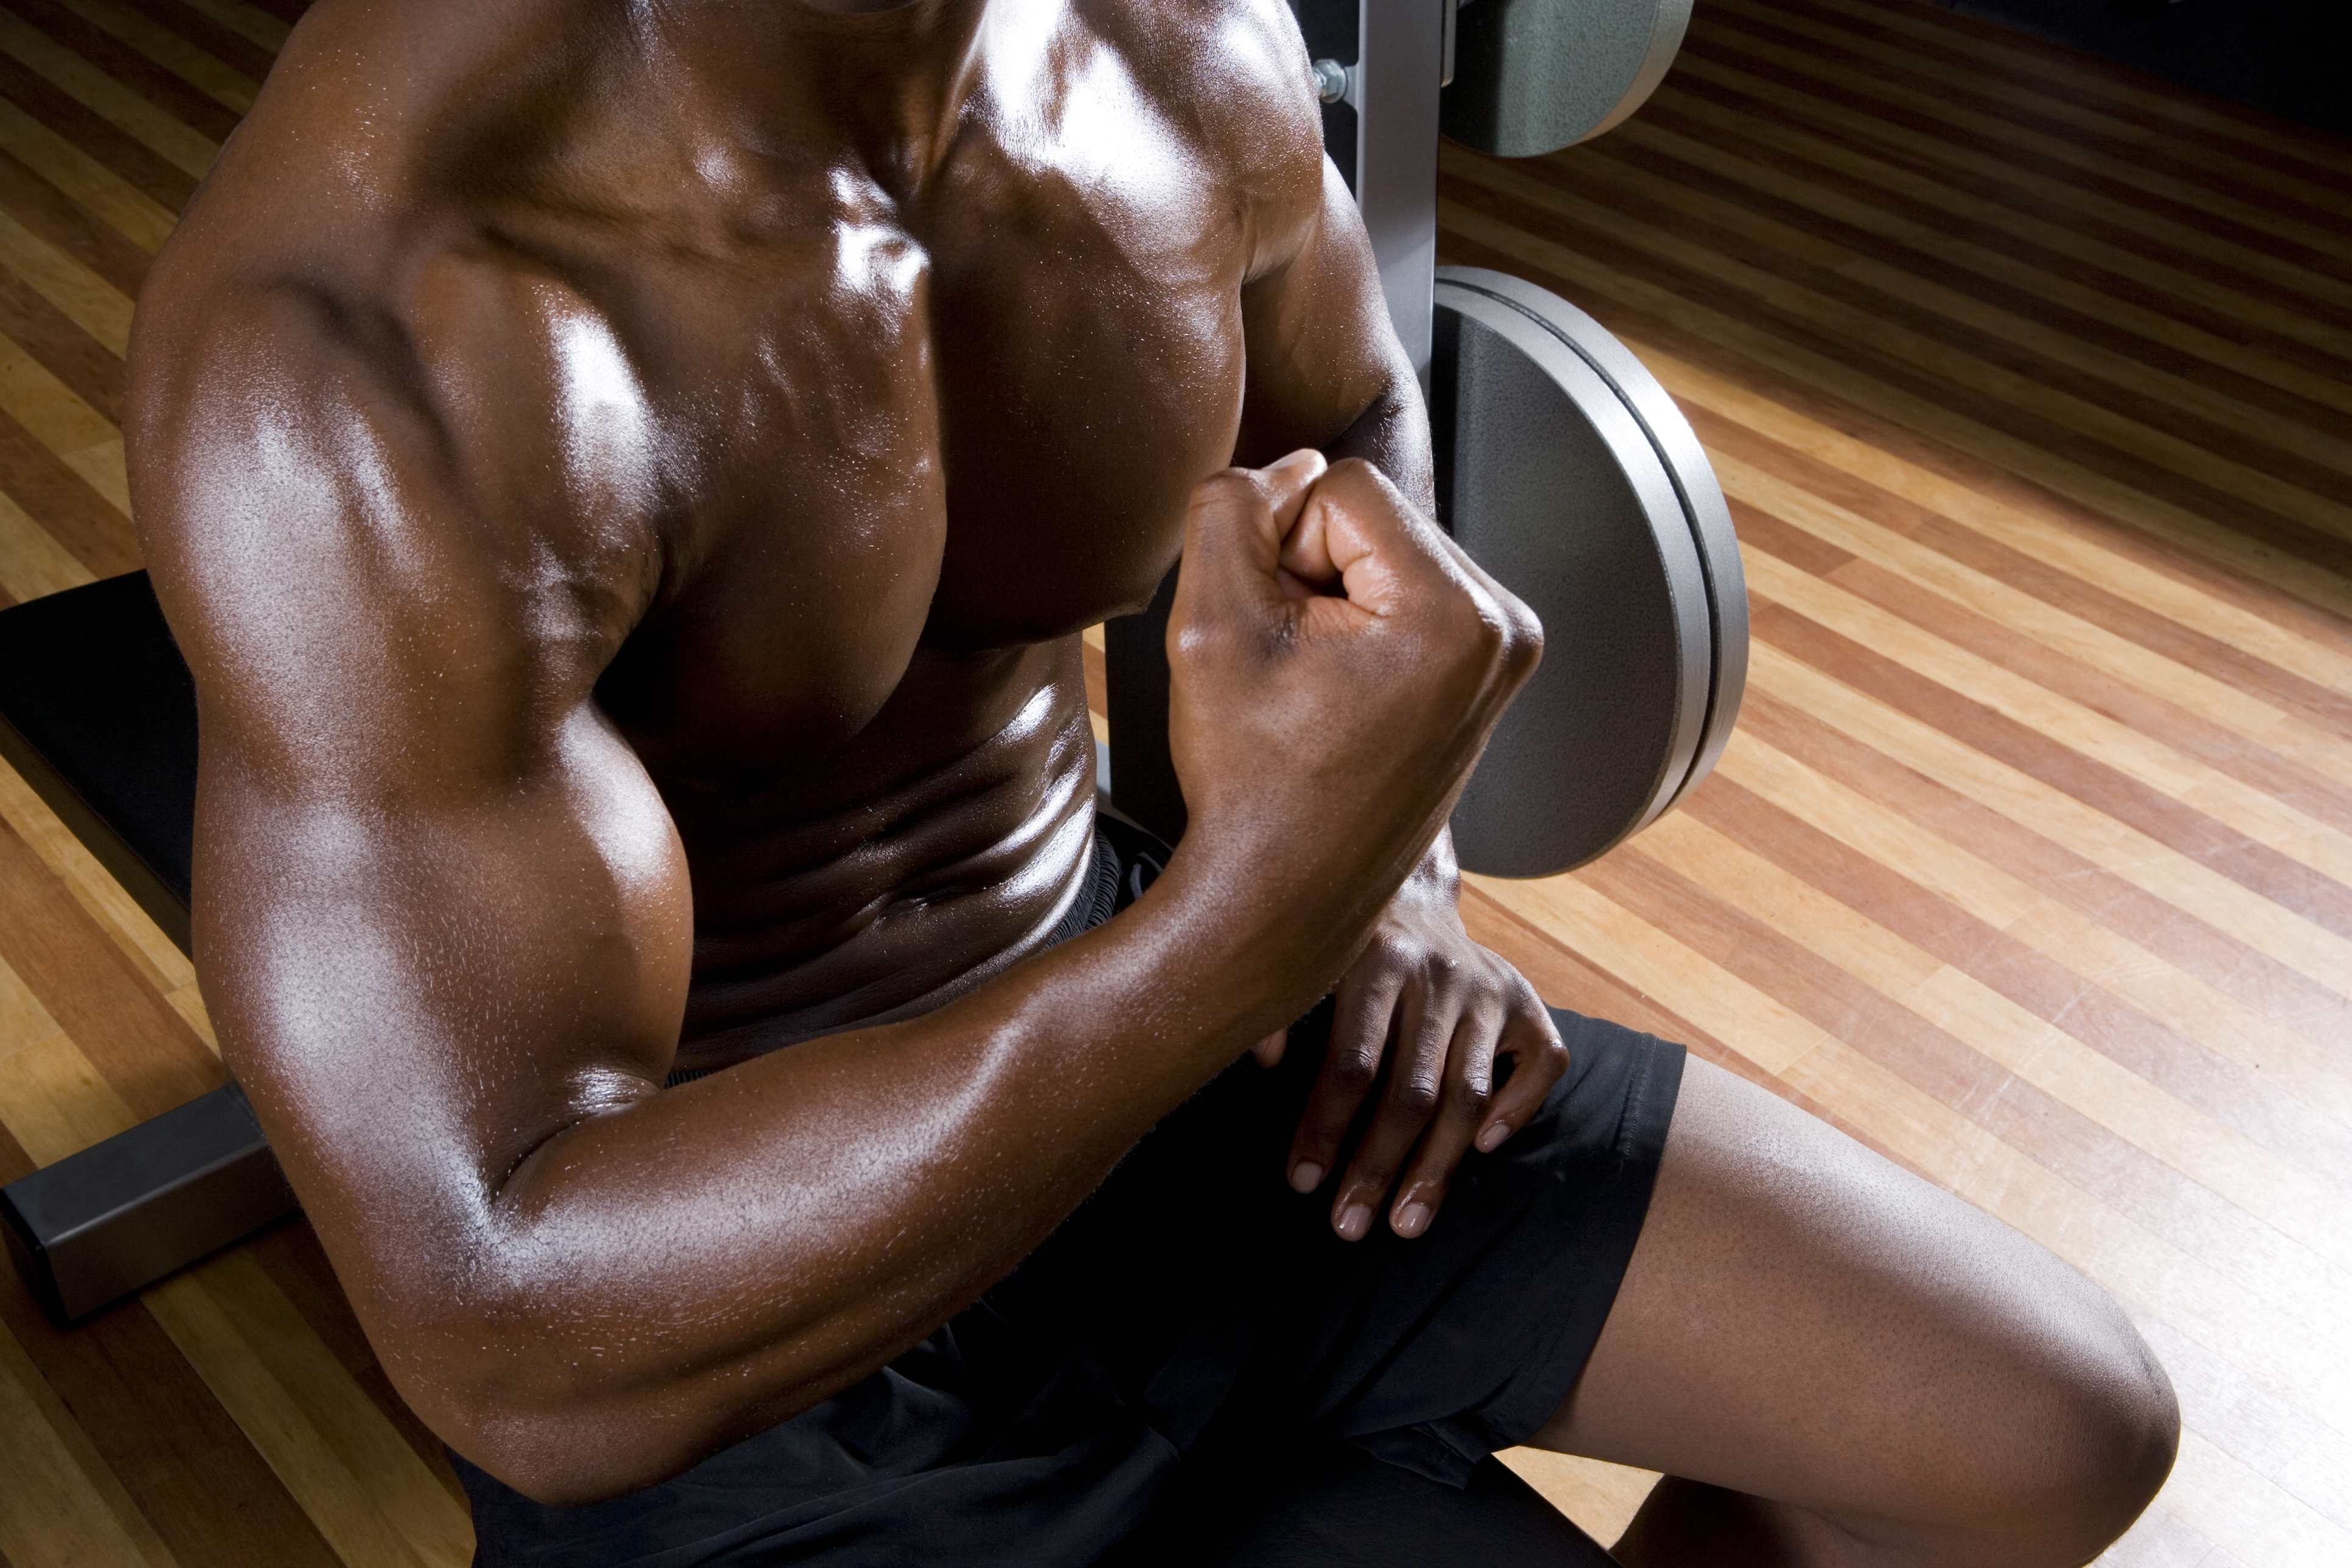 muscle definition comes with Living  Healthy and LA Fitness